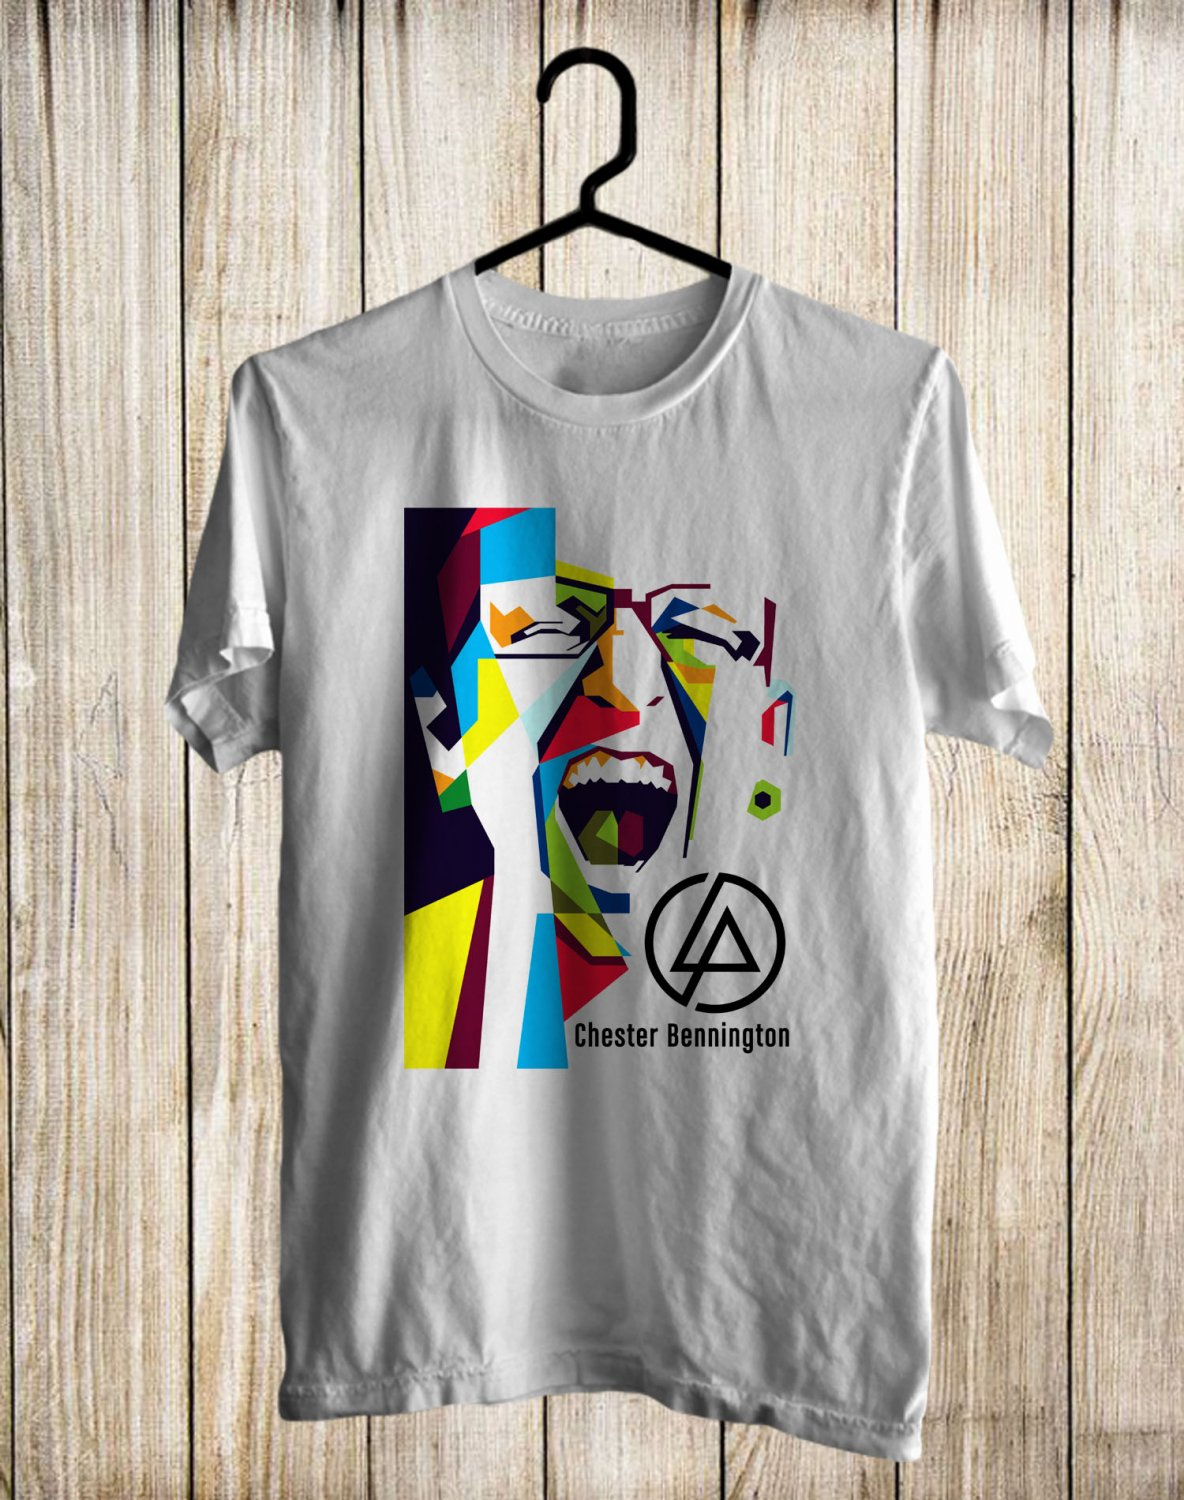 RIP Chester Bennington Linkin Park Vocalis White Tee's Front Side by Complexart